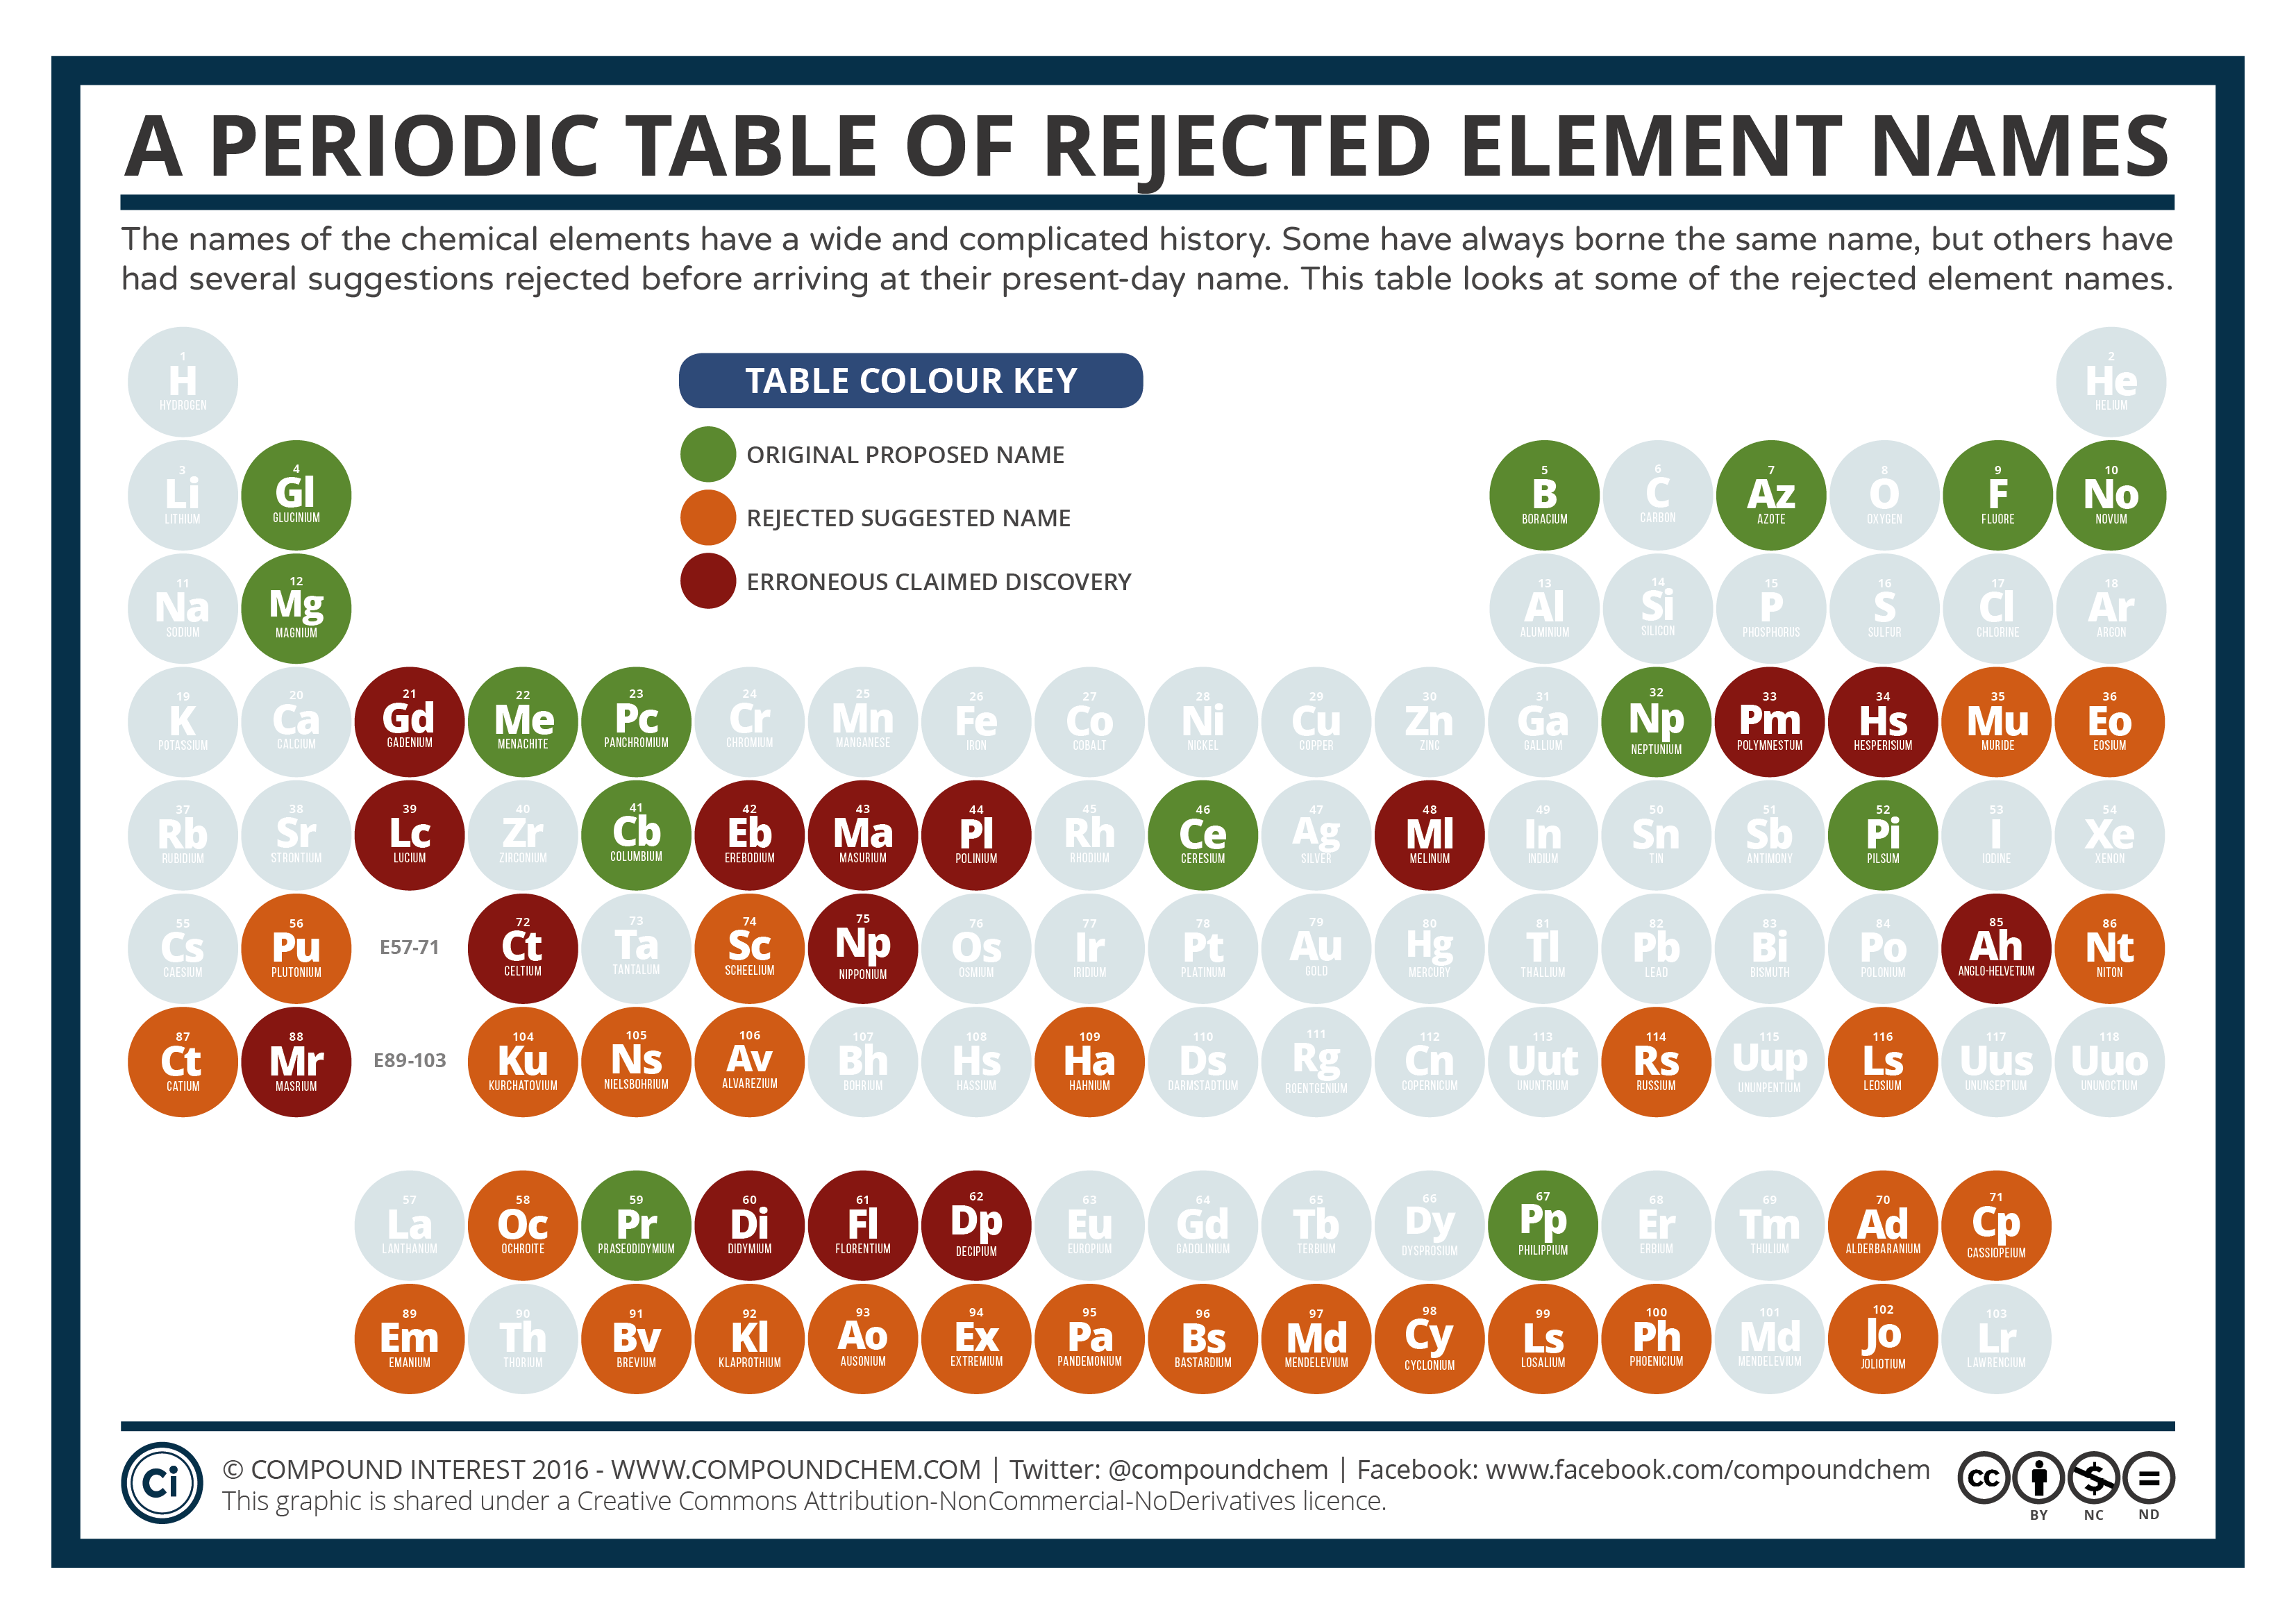 Compound interest the periodic table of oxidation states a periodic table of rejected element names gamestrikefo Choice Image